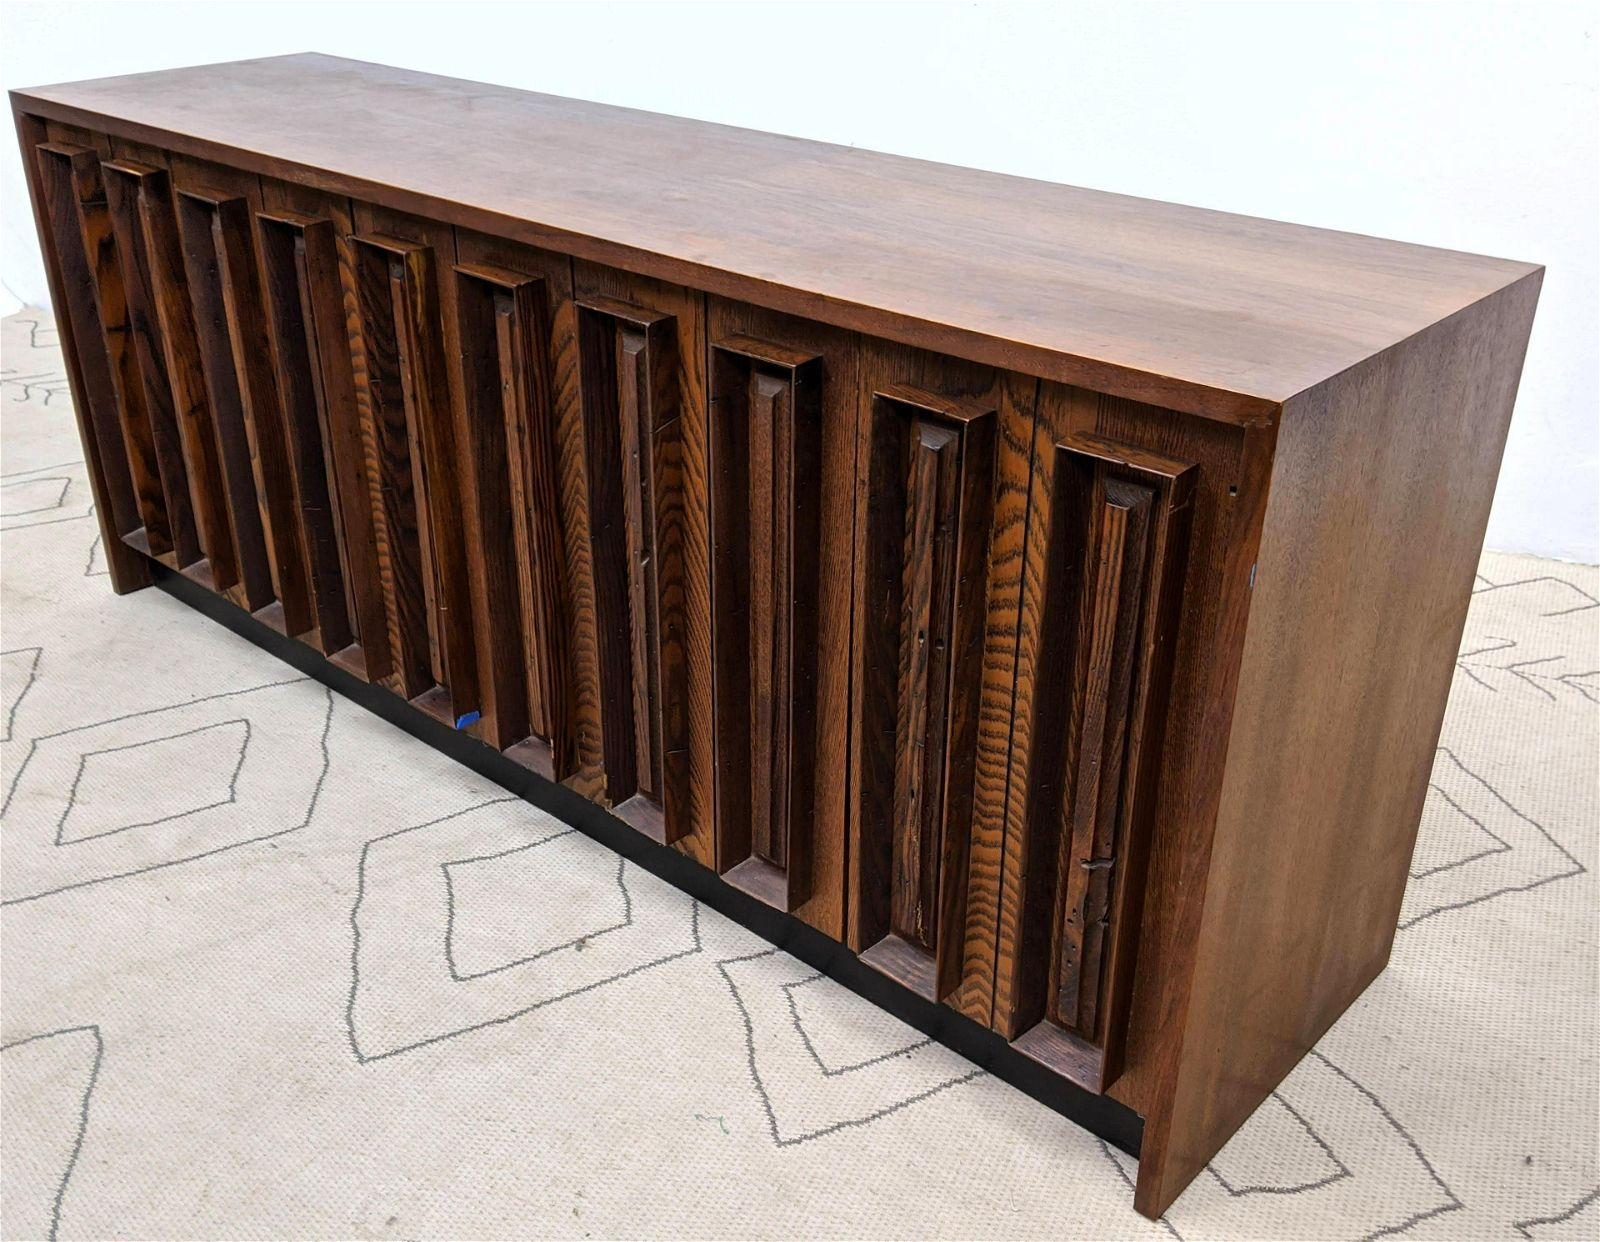 American Modern Credenza Sideboard Cabinet with Dimensi